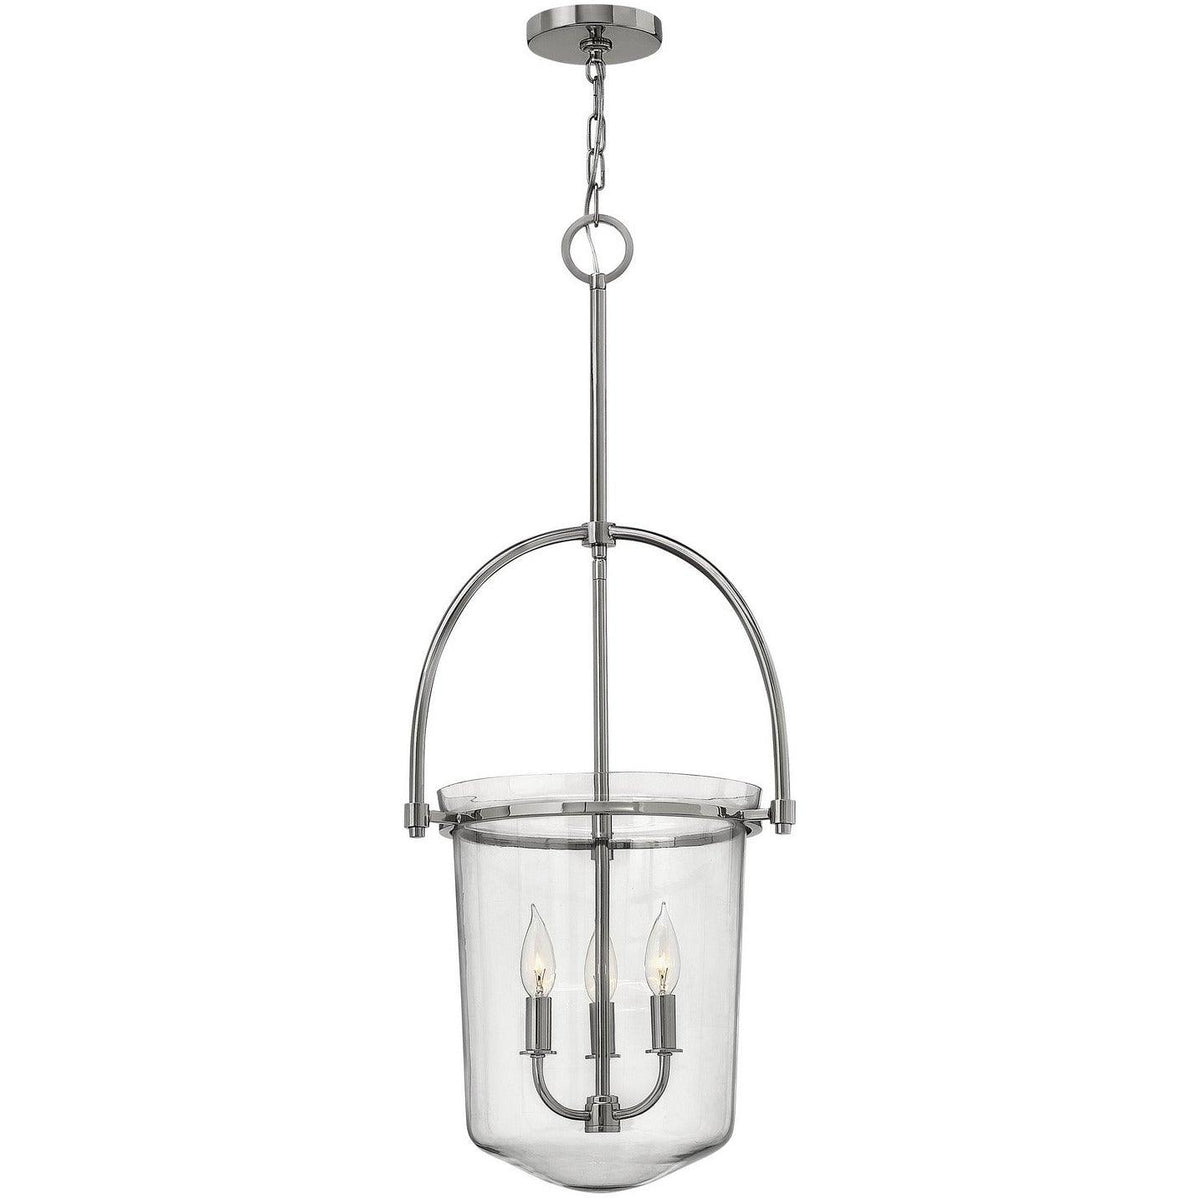 Hinkley Canada - 3033PN - Three Light Foyer Pendant - Clancy - Polished Nickel